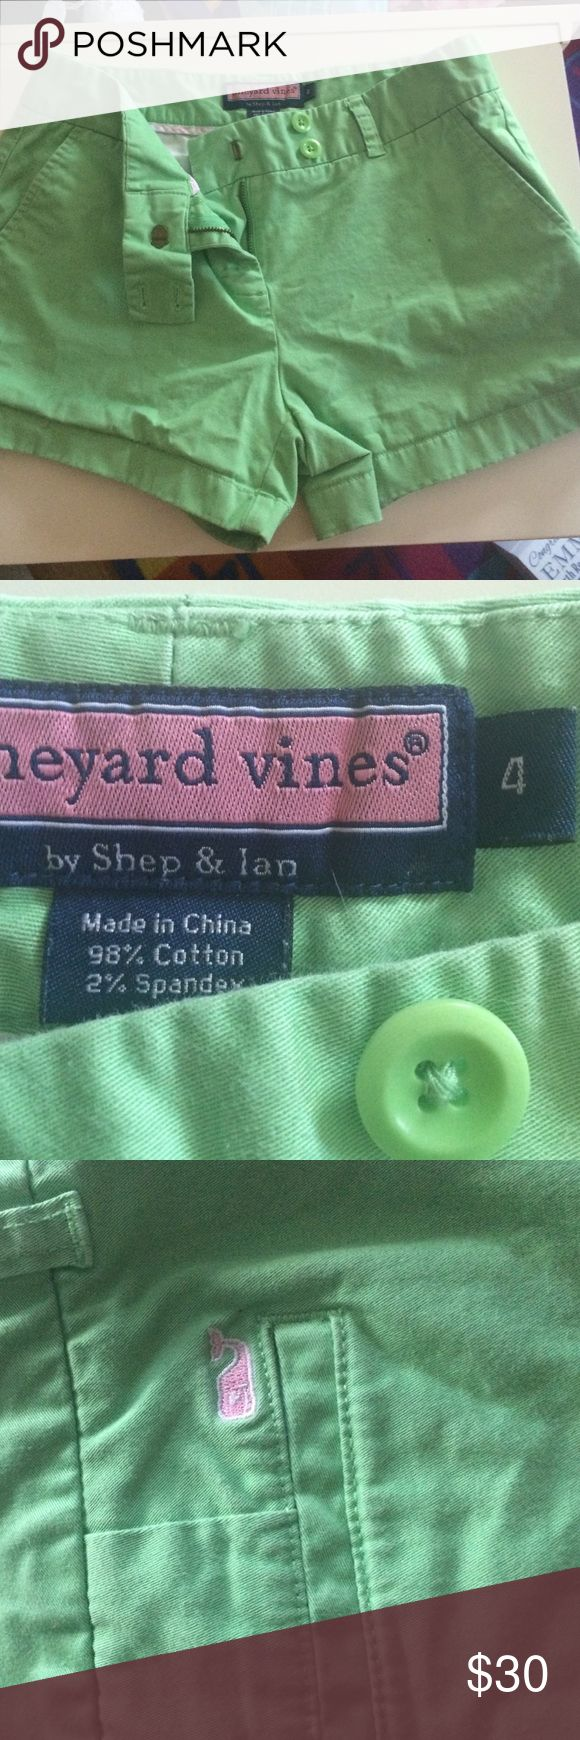 vineyard vines size 4 mint green shorts Vineyard Vines gently worn shorts Vineyard Vines Shorts